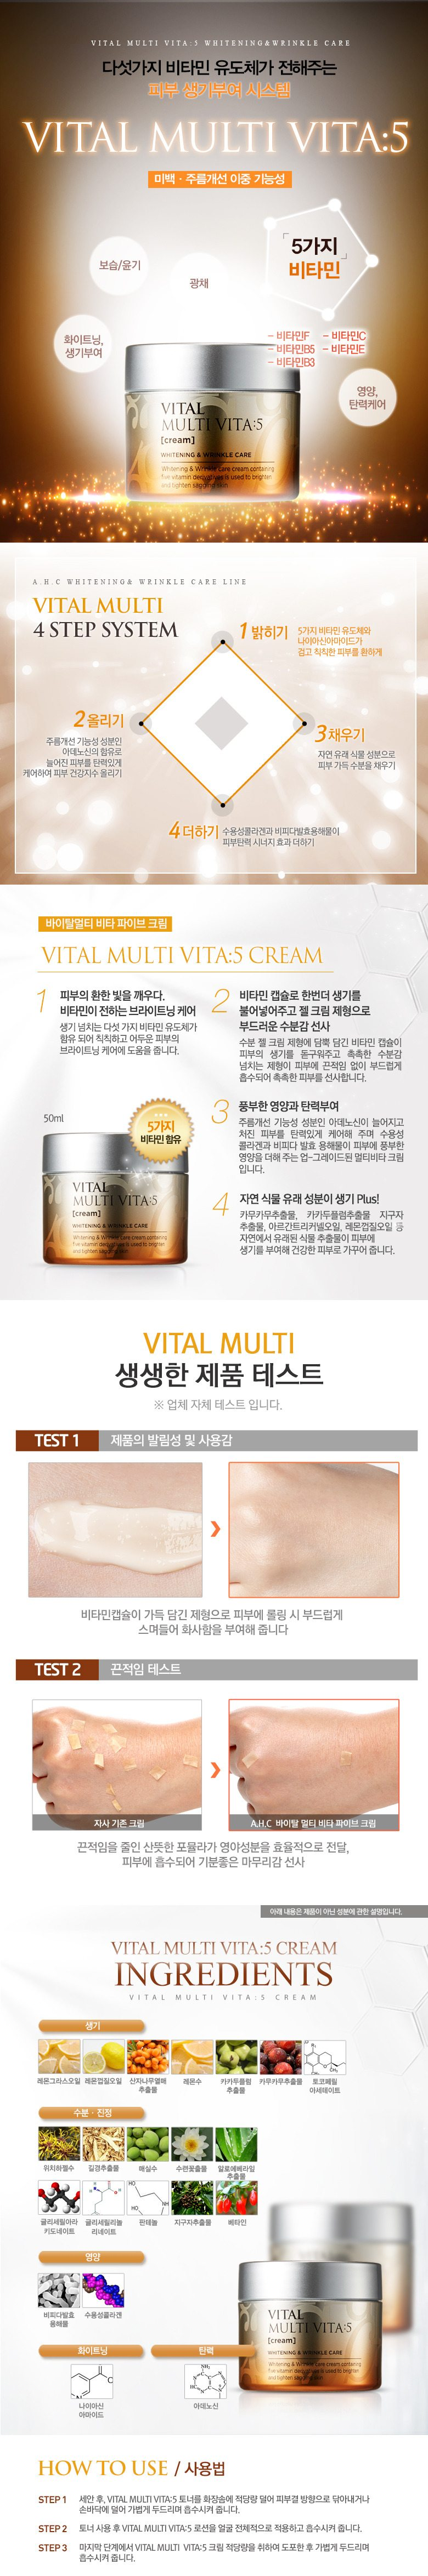 AHC Vital Multi Vita 5 Cream 50g malaysia singapore indonesia